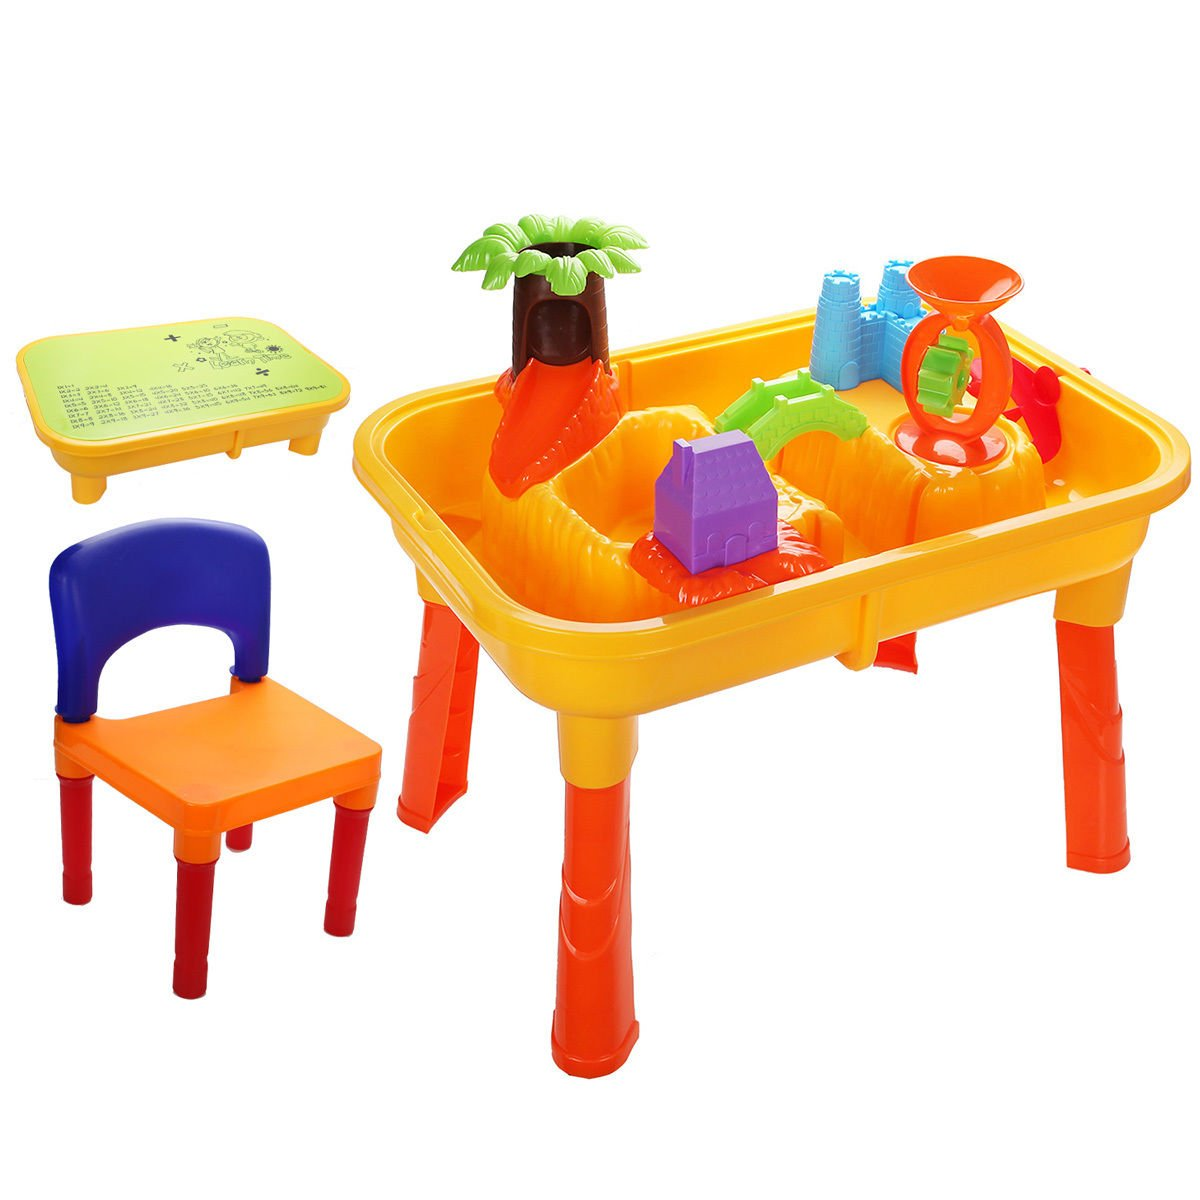 water table find line woven accent get quotations zon kids sand and beach play set with chair accessories drum parts small outdoor dining console baskets tool box cabinet tiered